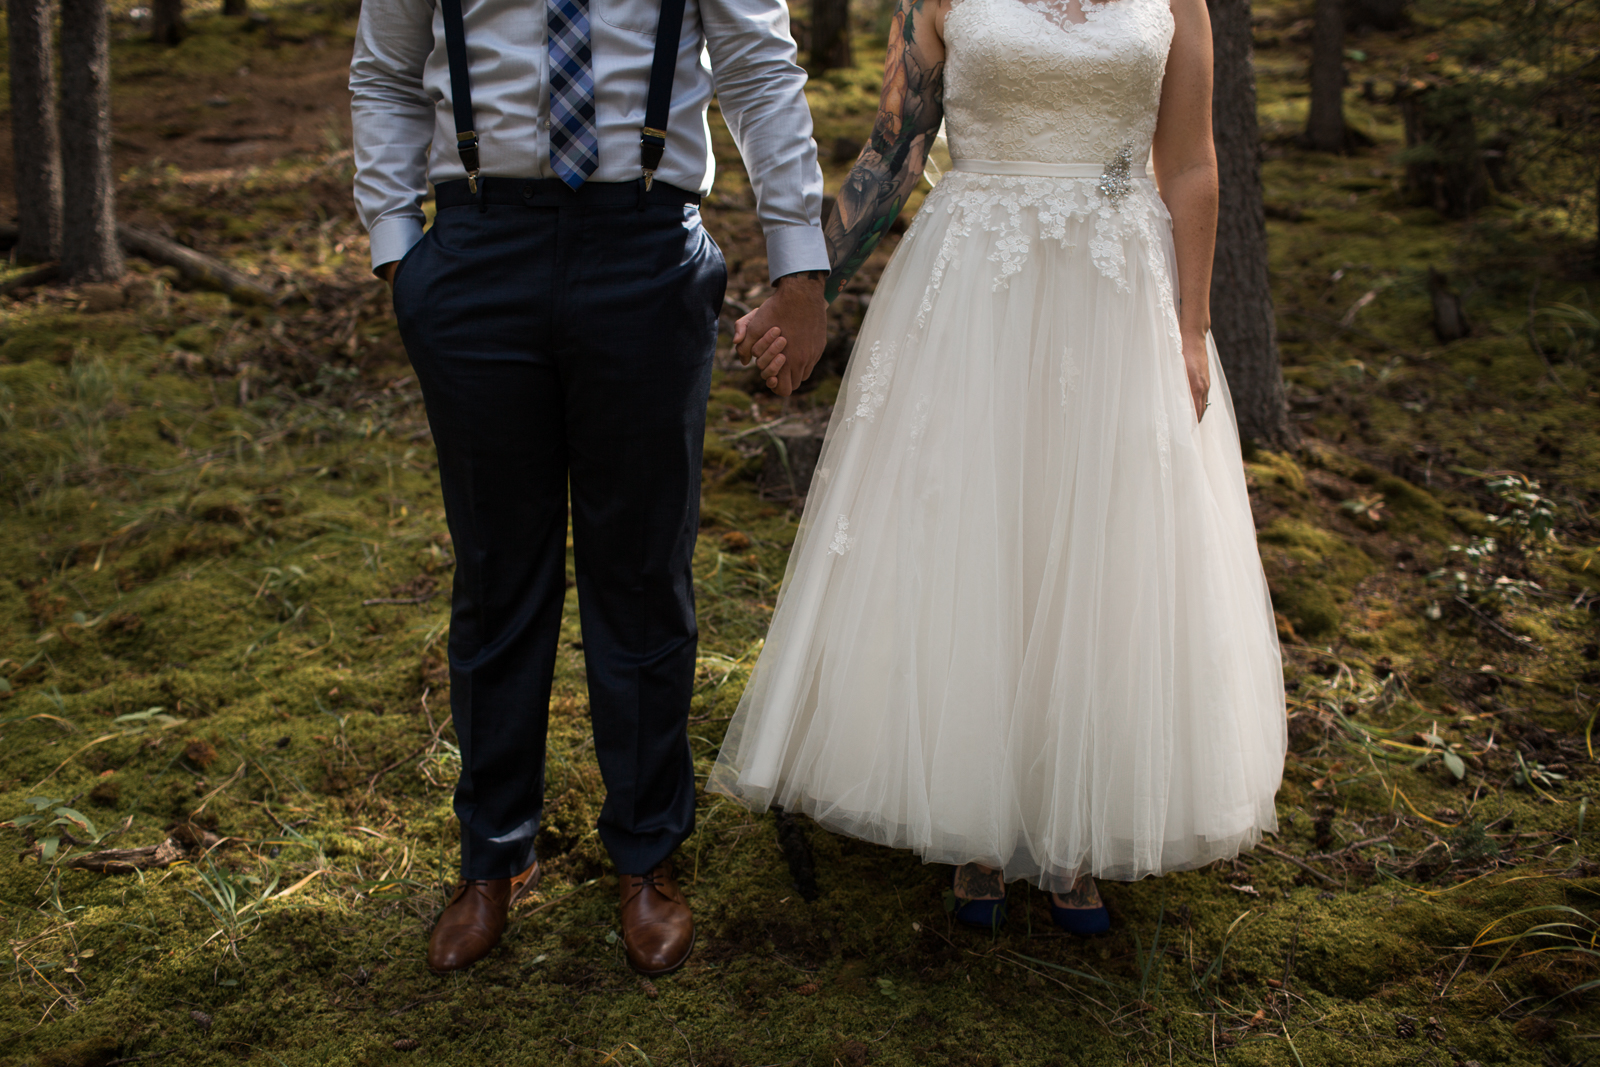 30-willow_and_wolf_photography_stephanie_and_kyle_banff_wedding_blogatp_7778